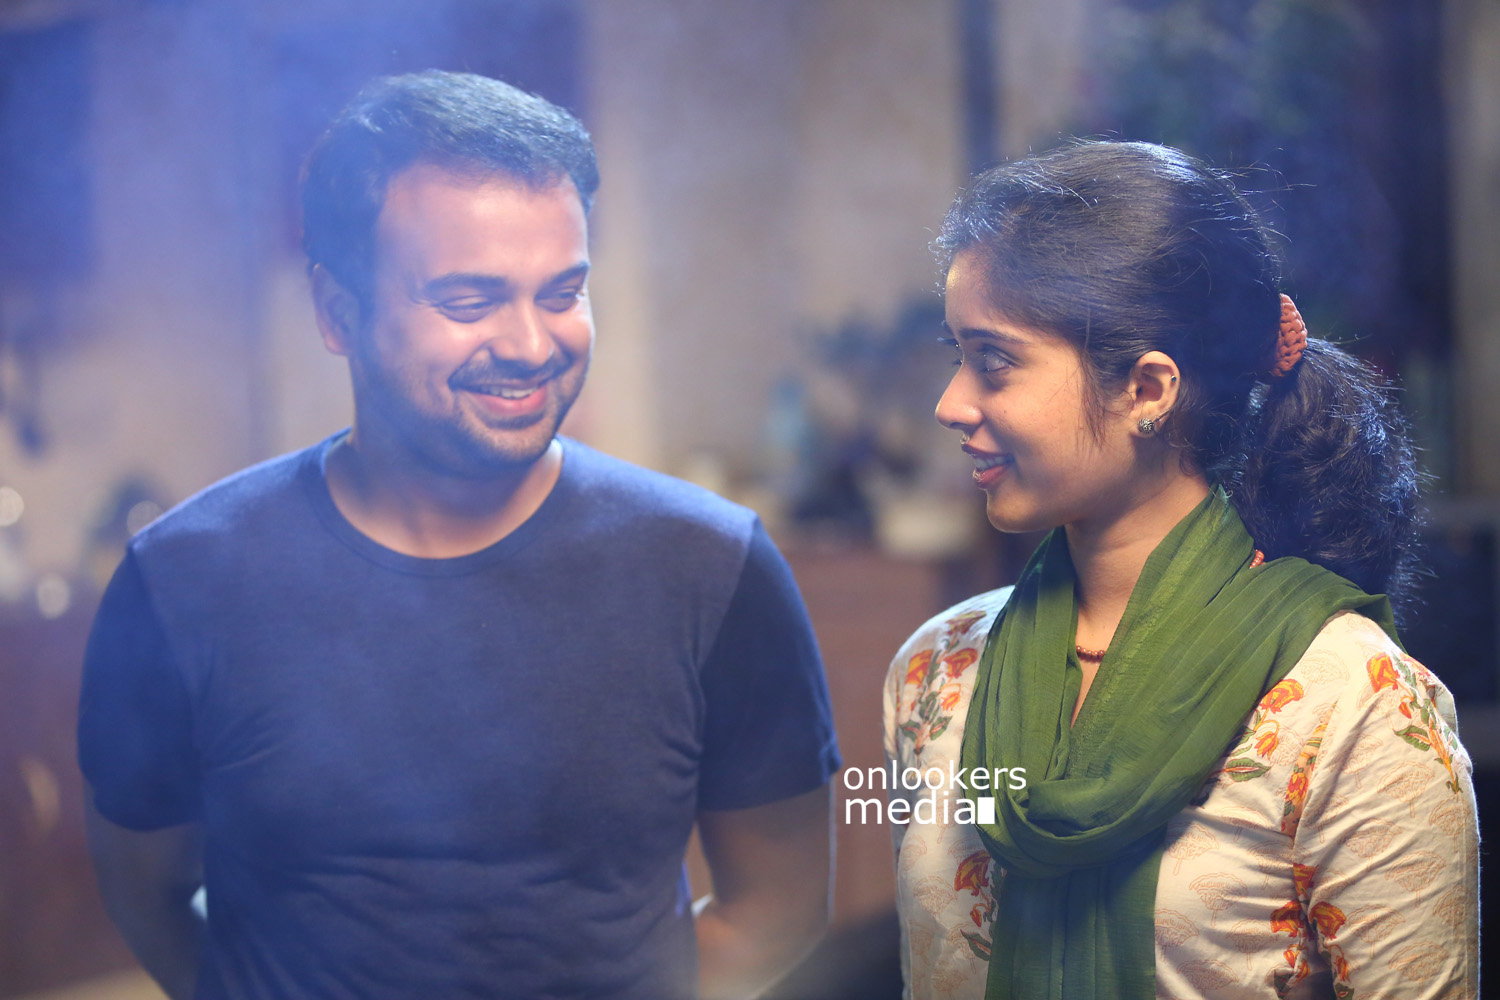 Madhura Naranga Stills-Images-Photos-Malayalam Movie 2015-Kunchacko Boban-Parvathy Ratheesh-Neeraj Madhav-Biju Menon-Onlookers Media